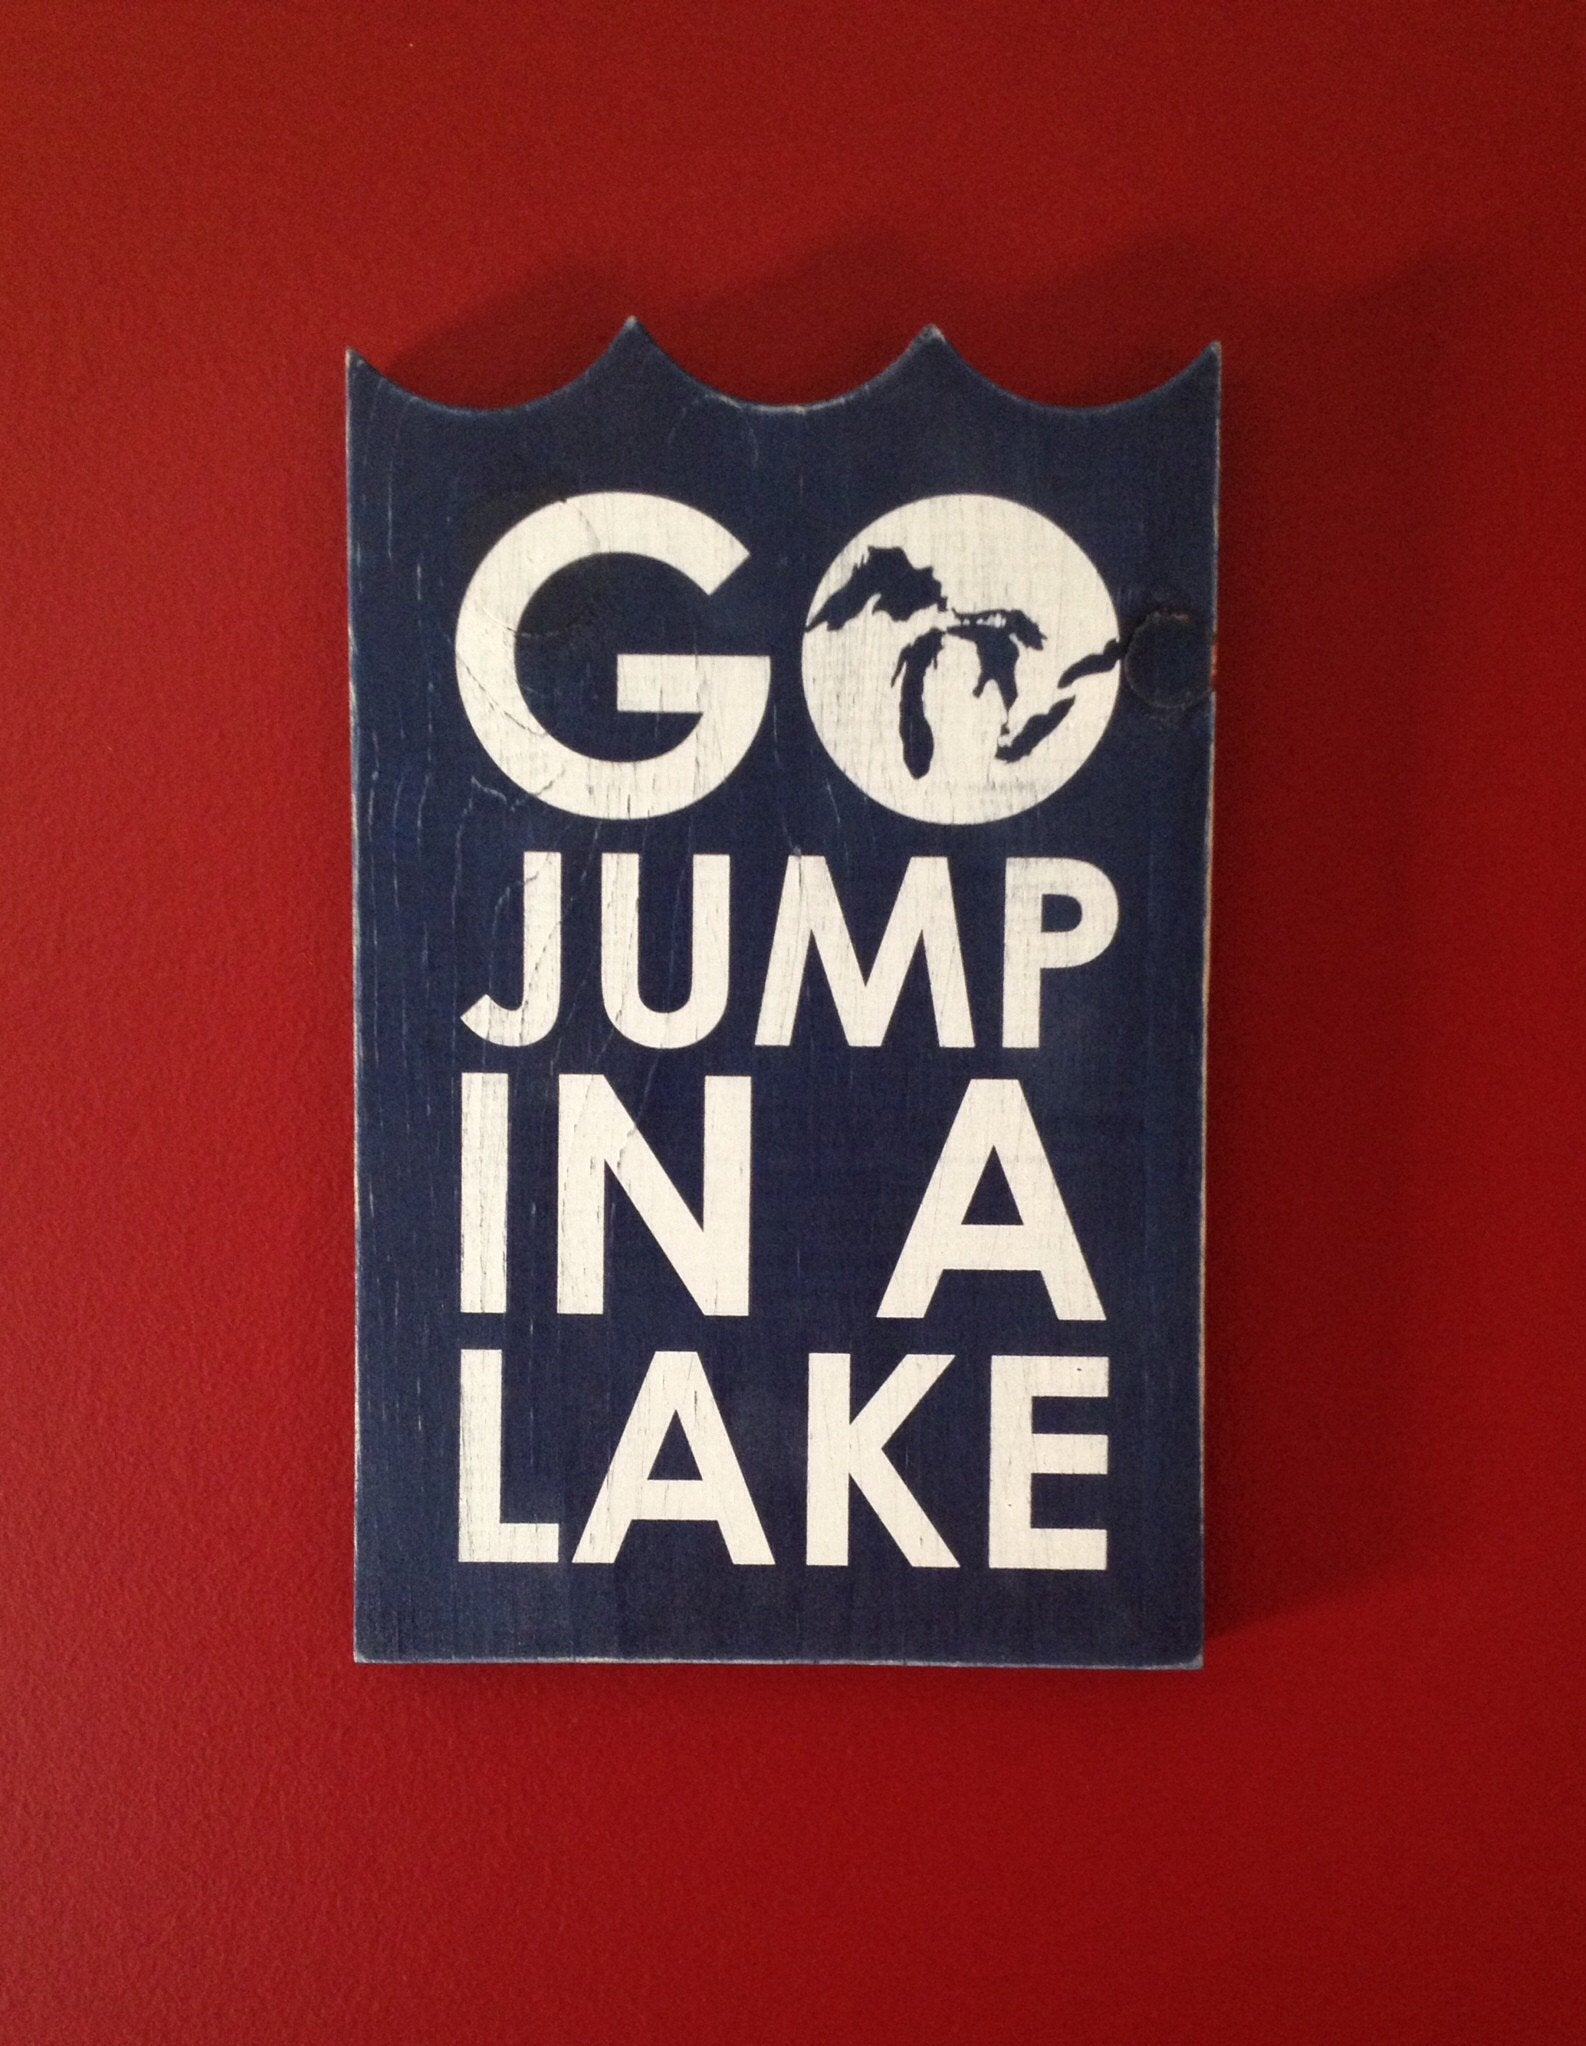 "Go Jump in a Lake 7 1/4""x 11"" Rustic Wood Sign - The Great Lakes State"